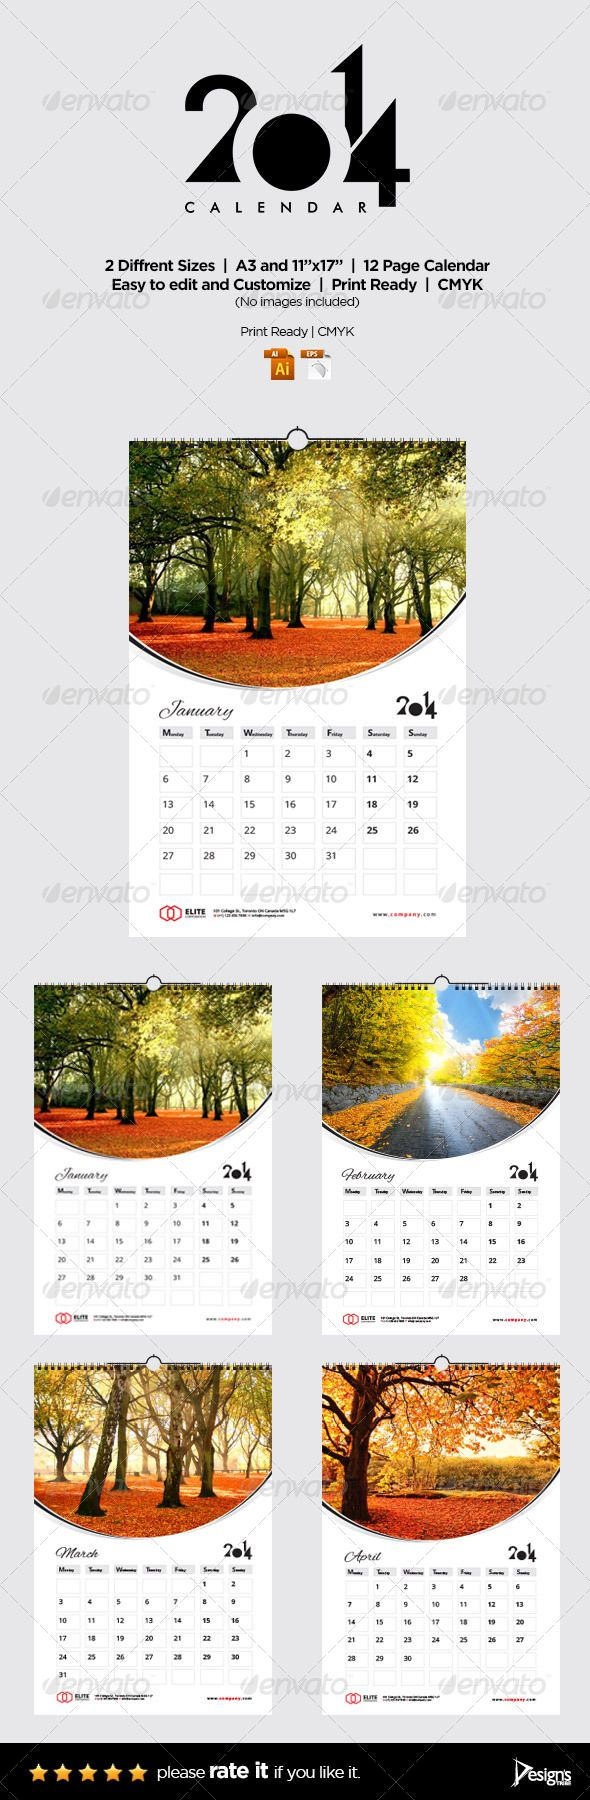 """Wall Calendar 2014 Vol 2  #GraphicRiver         Wall Calendar 2014 Vol 2   Size A3 & 11""""×17""""   Volume 2 of the 2014 Calendar Templates includes 26 AI and 26 EPS print ready files.   Volume 2 calendar includes 12 months from January 2014 to December 2014 plus Front Cover in two different sizes.   Clean, well organized and easy to use, just add in your own company or personal details, adjust the colour, add your photos and you are ready to print!!   NOTE: No Images included.   Features…"""